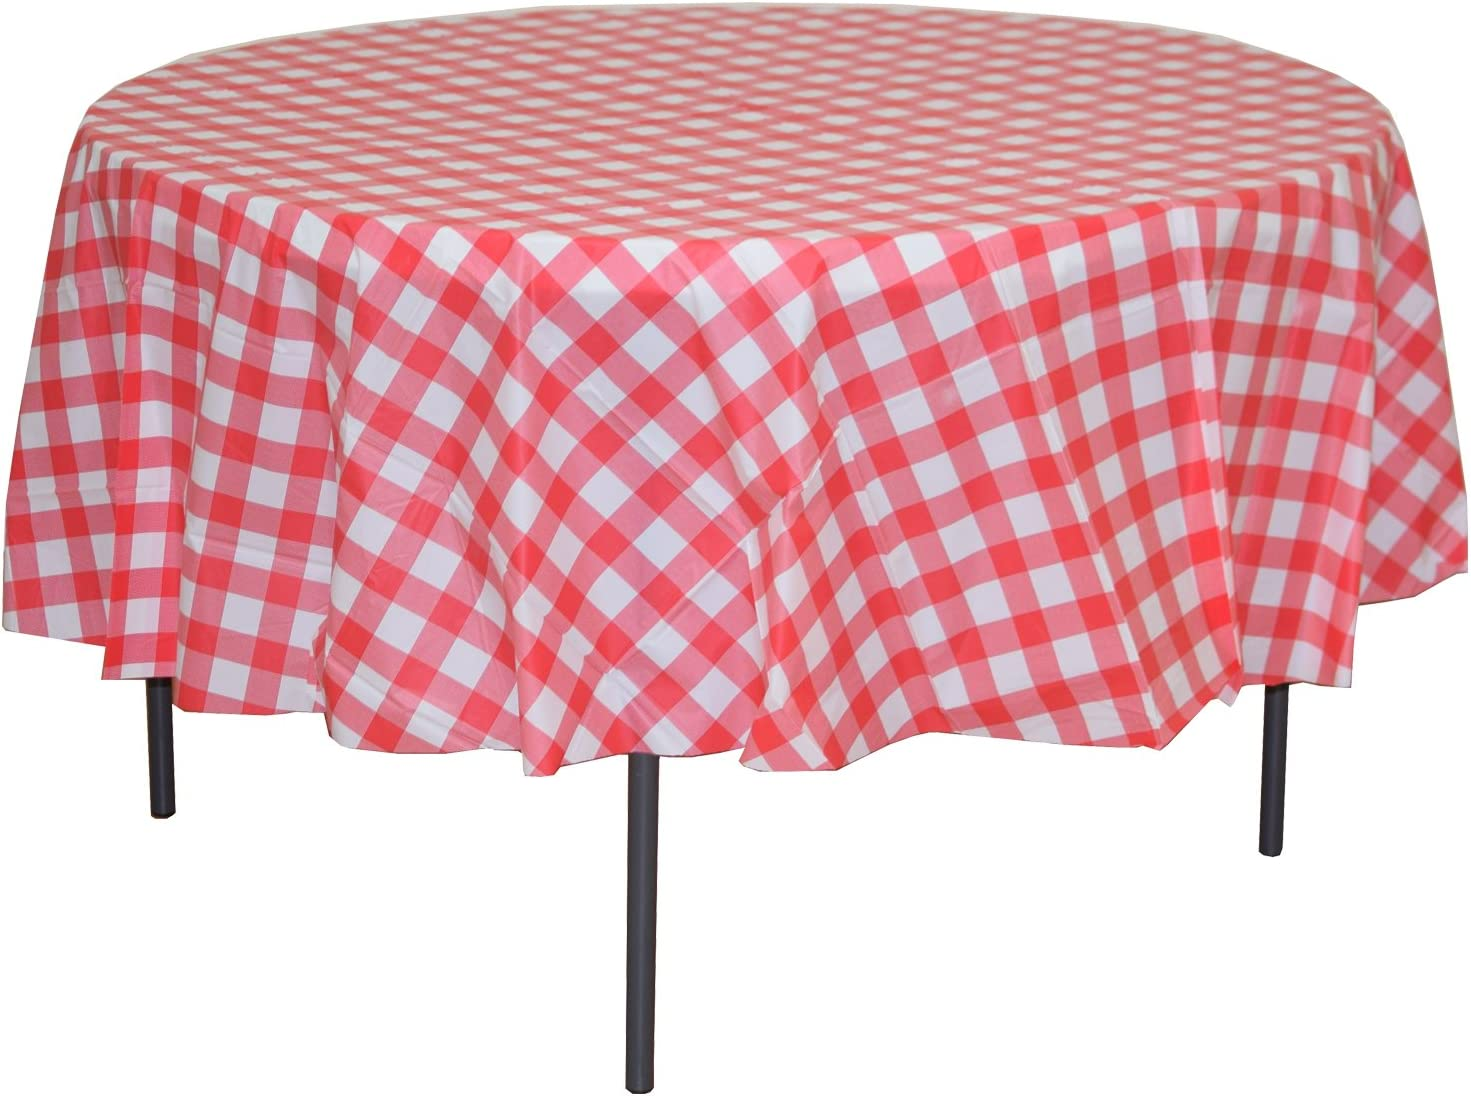 """2 Pack 54/"""" x 108/"""" Disposable Plastic Table Cover Fish Theme Party Supplies for Kid Summer Pool Beach Little Fisherman Birthday Baby Shower Party Decorations WERNNSAI Gone Fishing Tablecloth"""